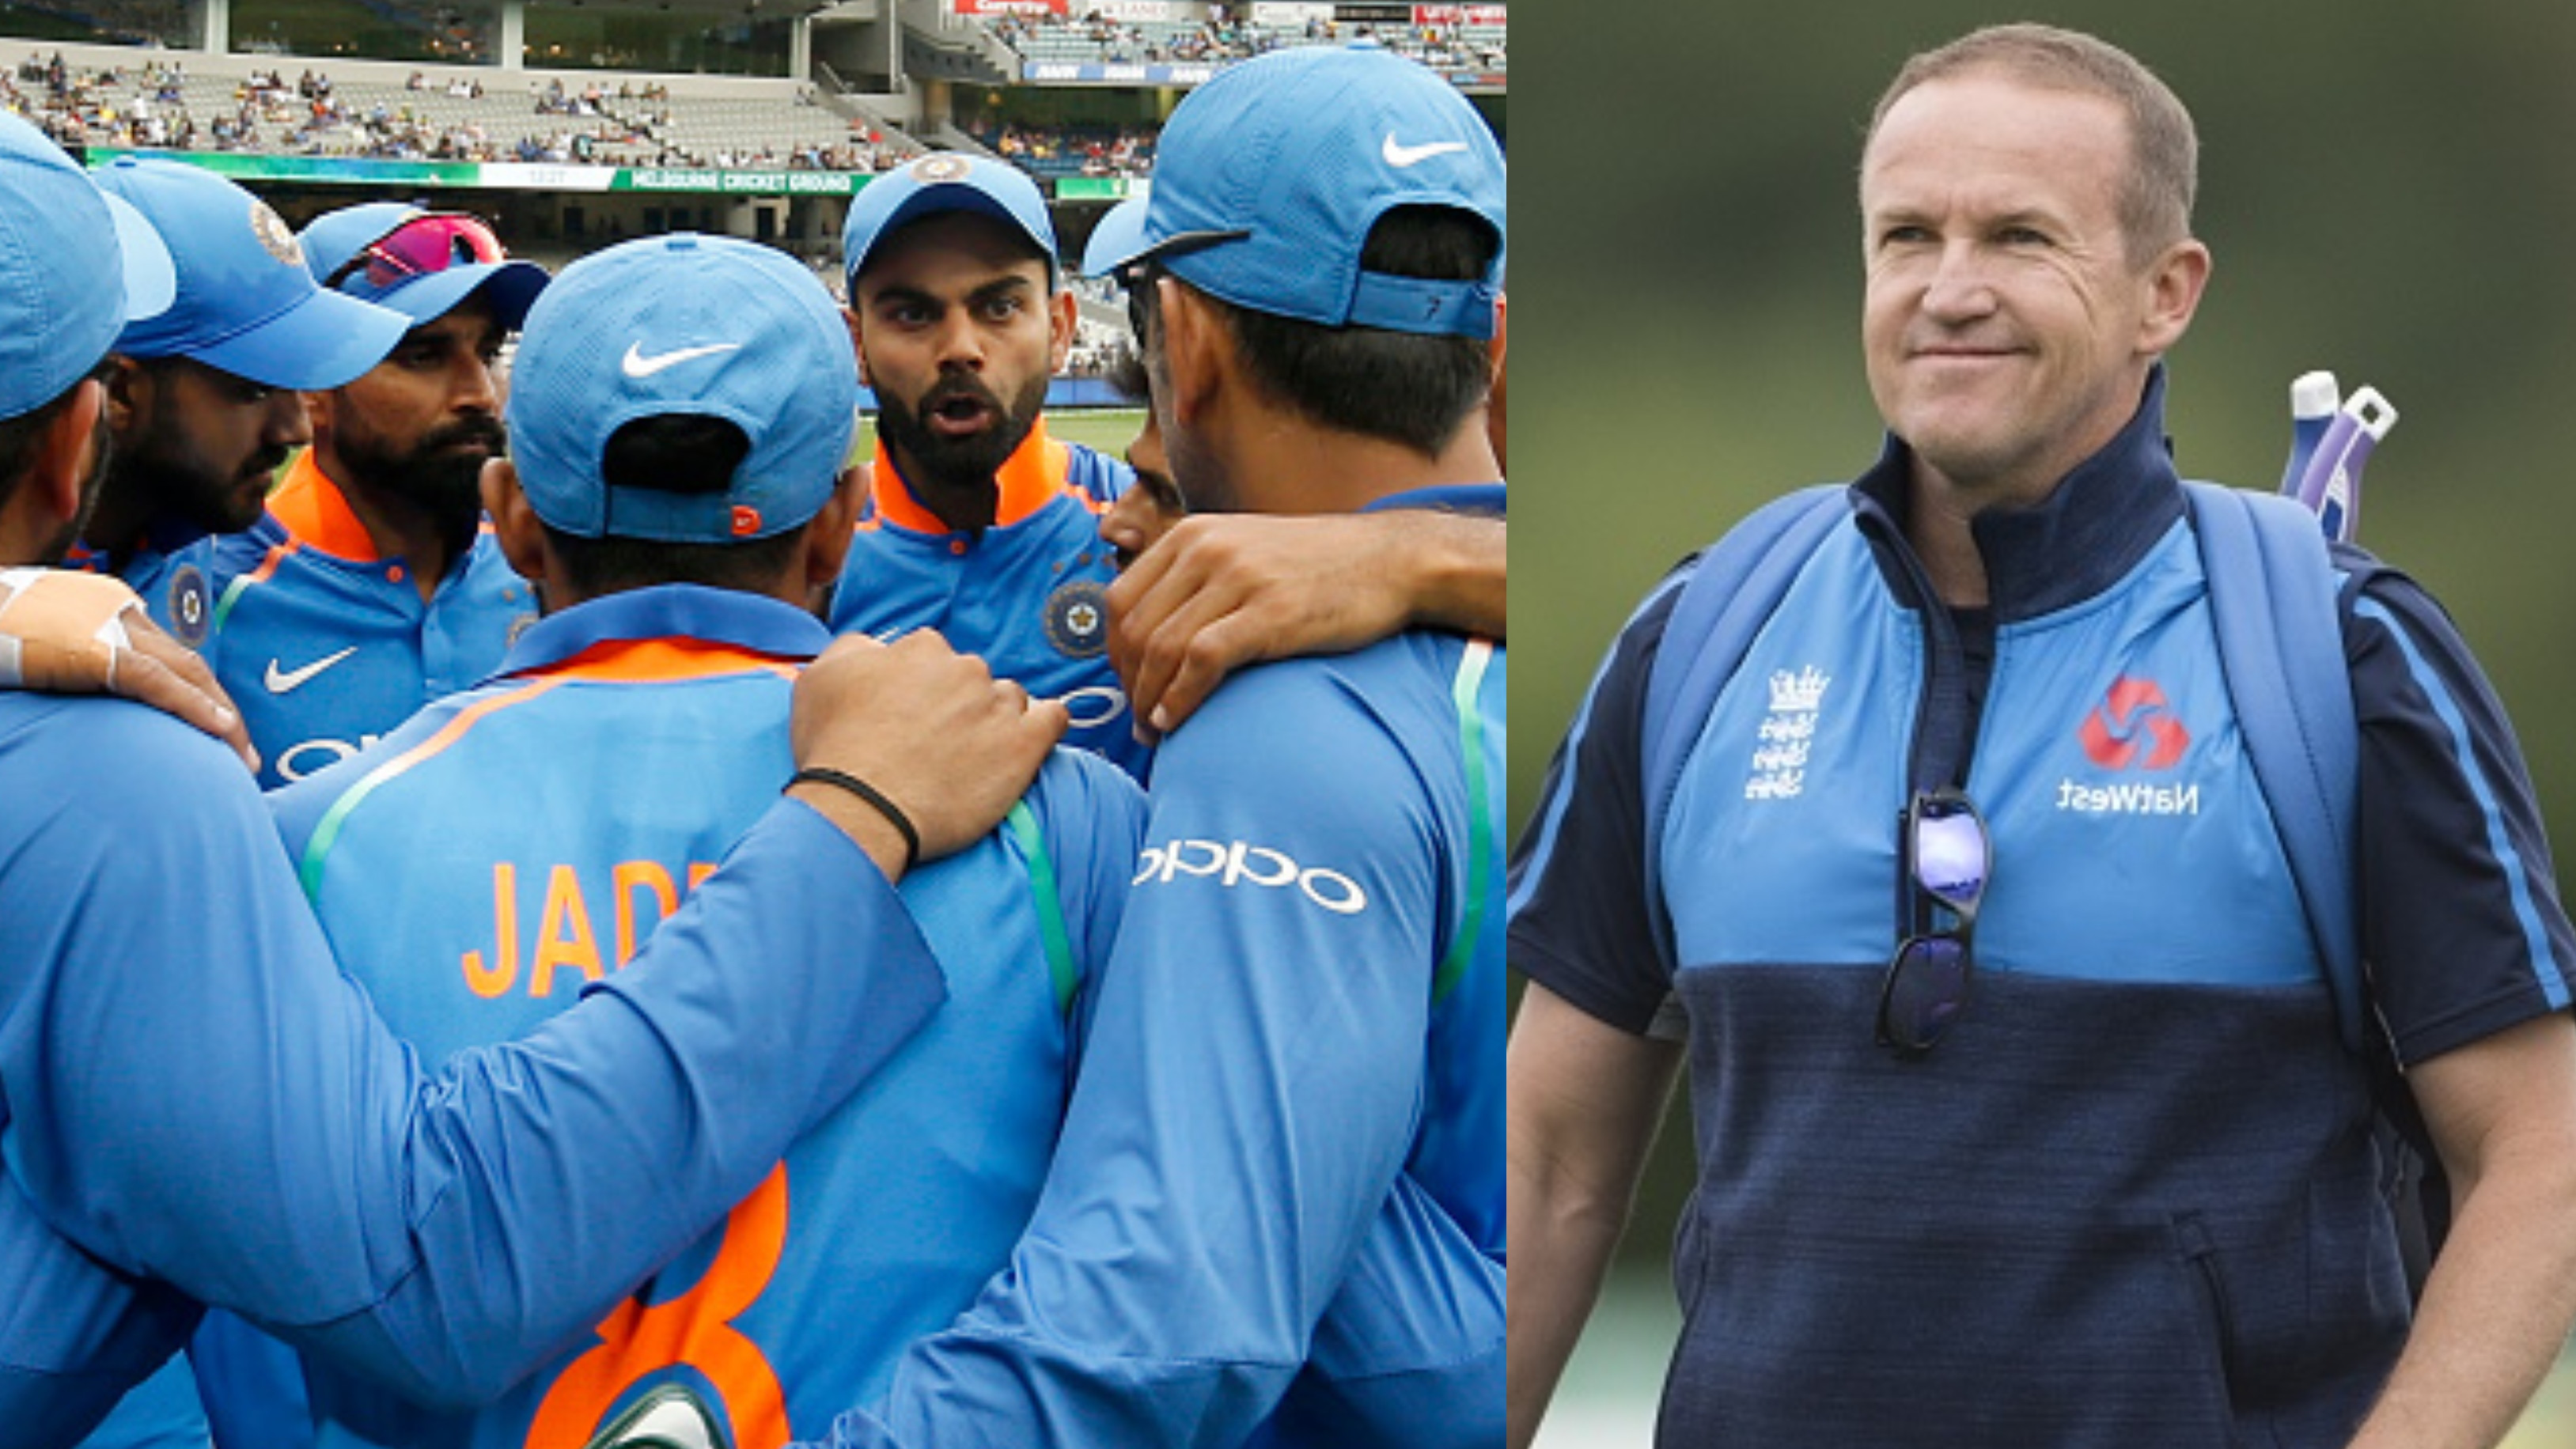 CWC 2019: Andy Flower names Team India as his pick to win 2019 World Cup